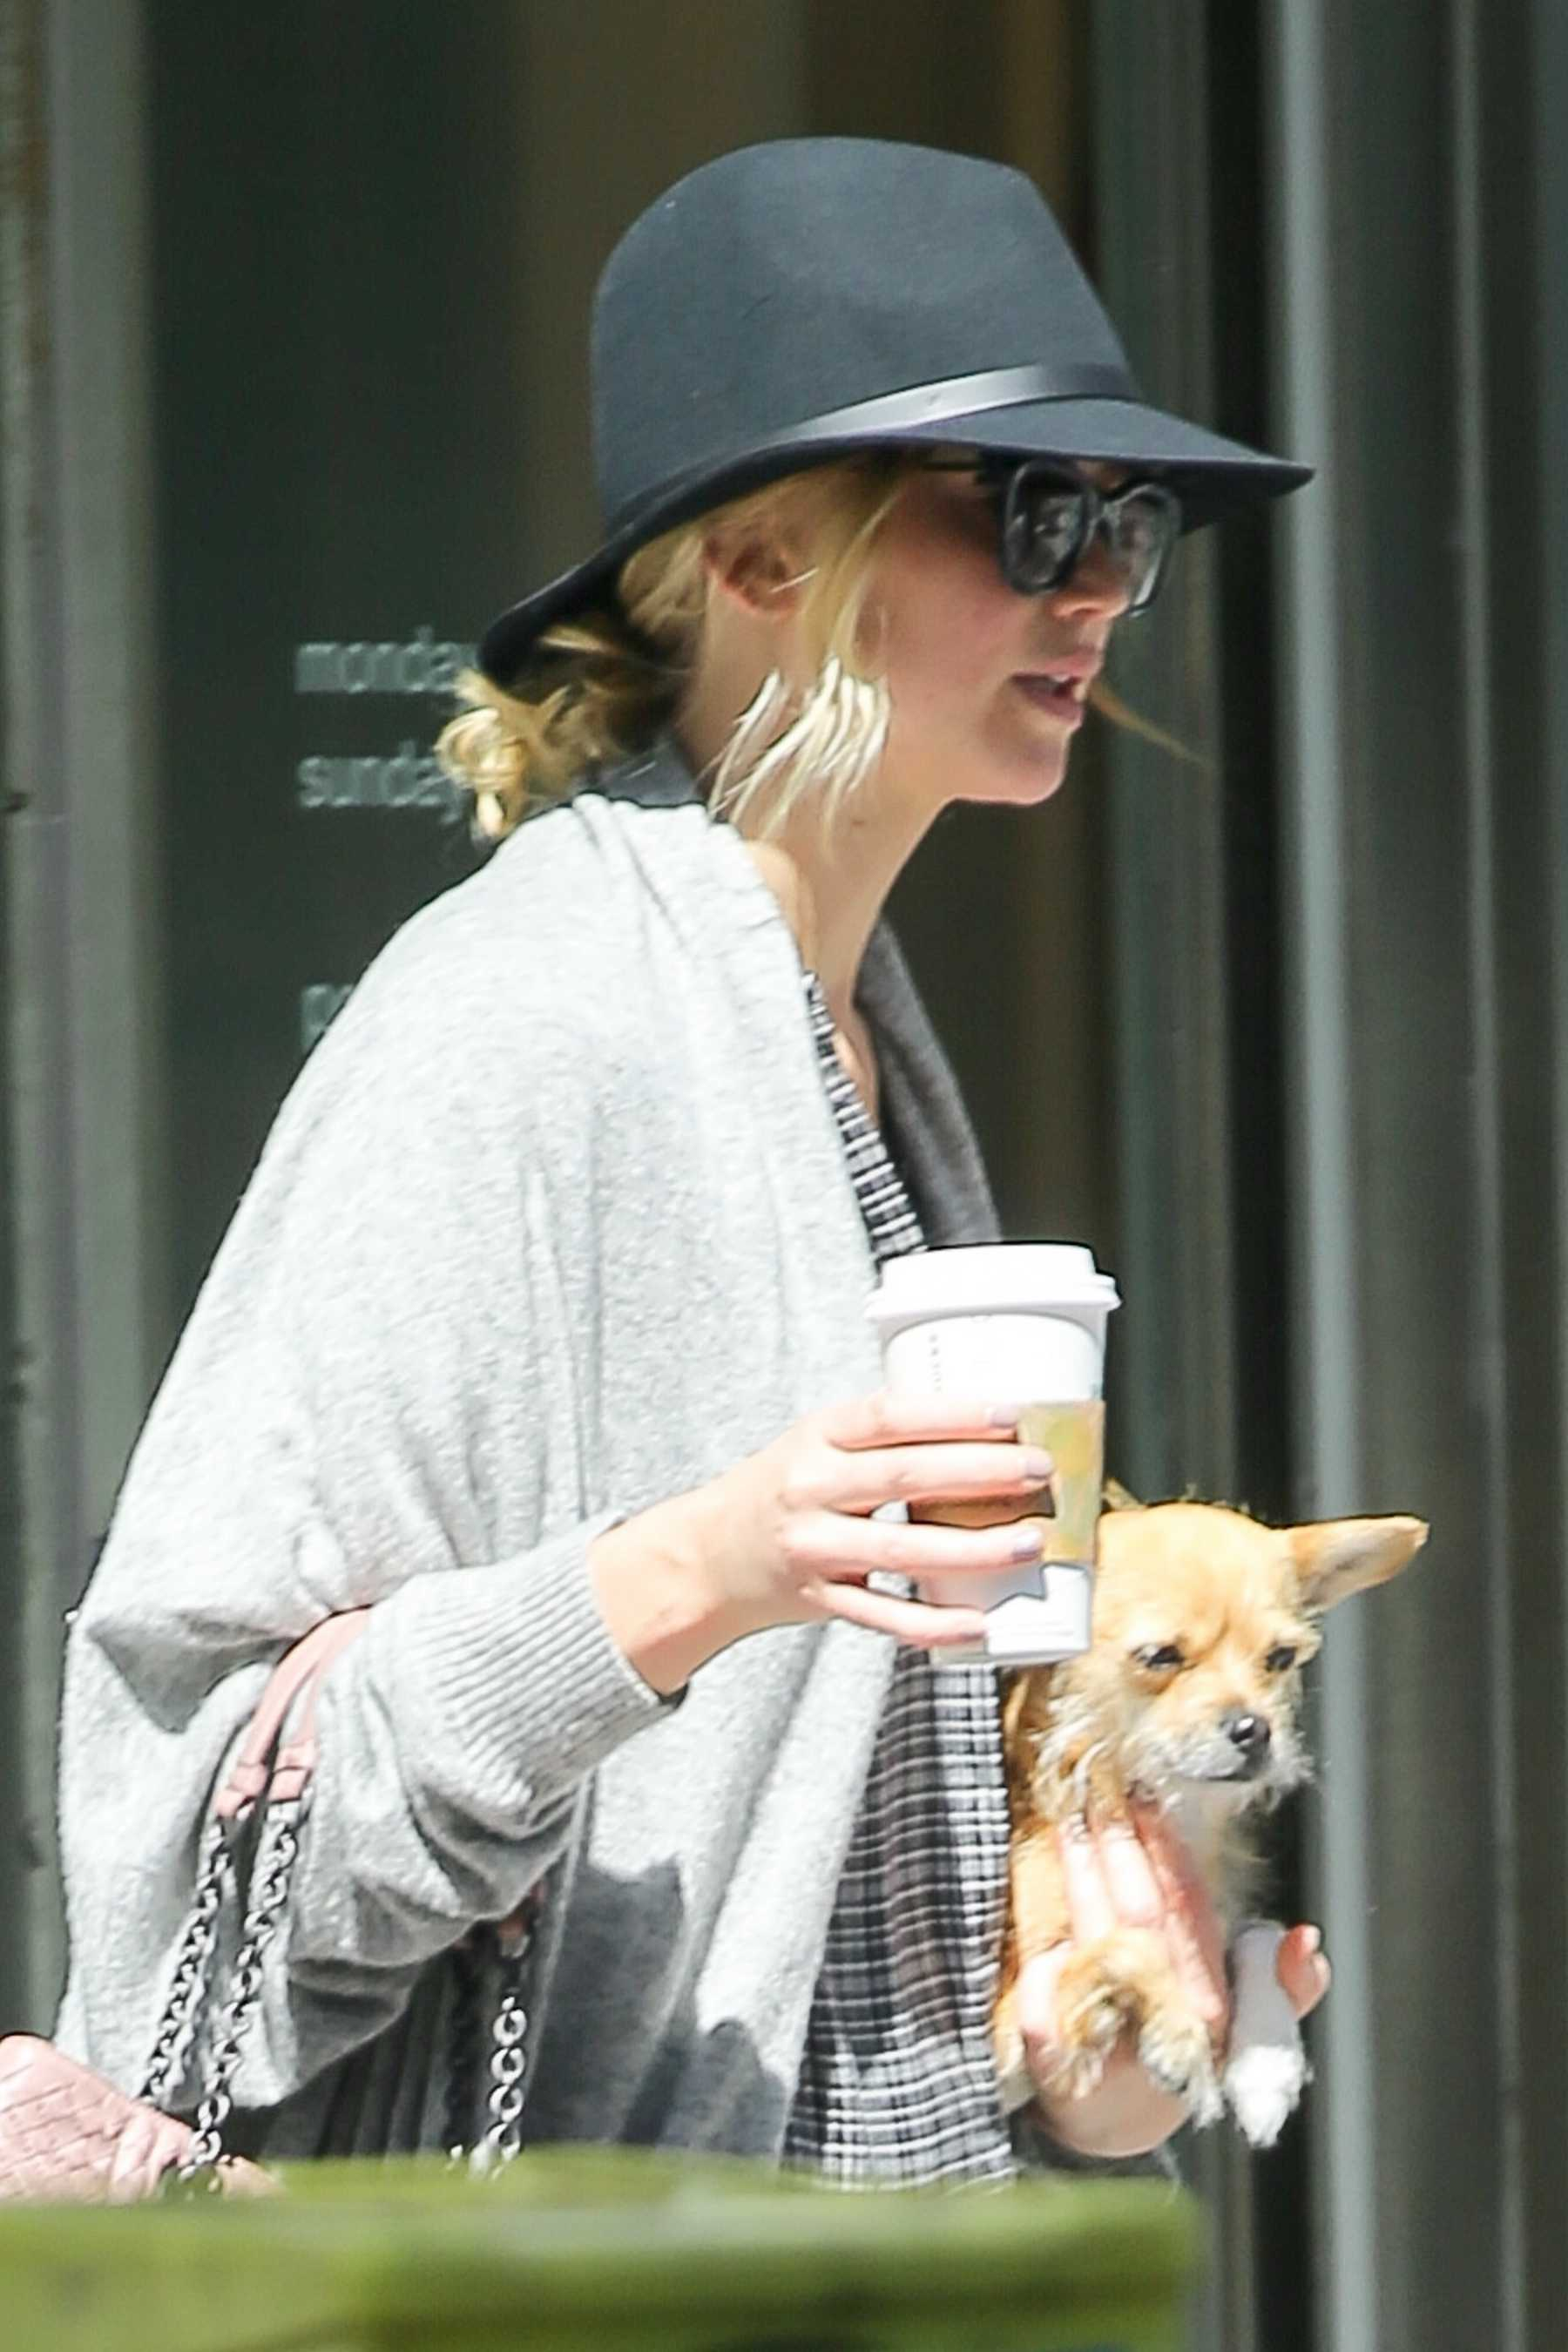 http://jenniferlawrencedaily.com/gallery/albums/userpics/10001/Jennifer_Lawrence_-_Goes_for_a_stroll_with_her_dog_Pippi_in_NYC_on_September_1-04.jpg